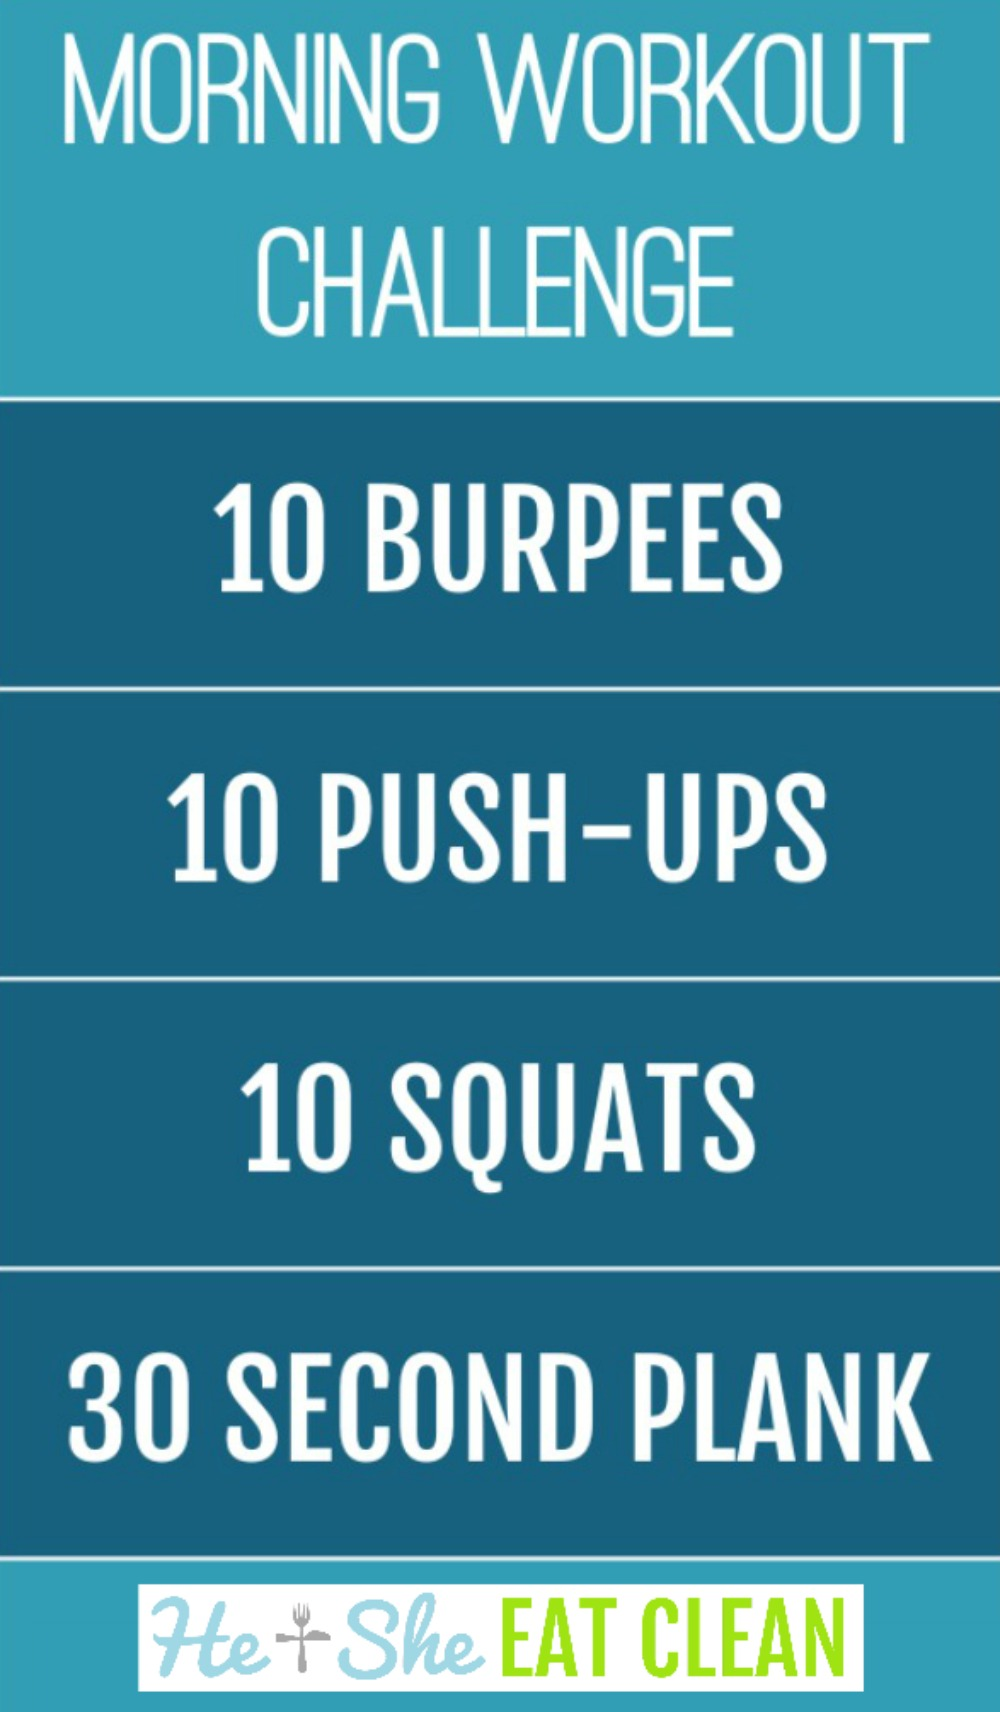 morning workout challenge listed with burpees, push-ups, squats, and planks